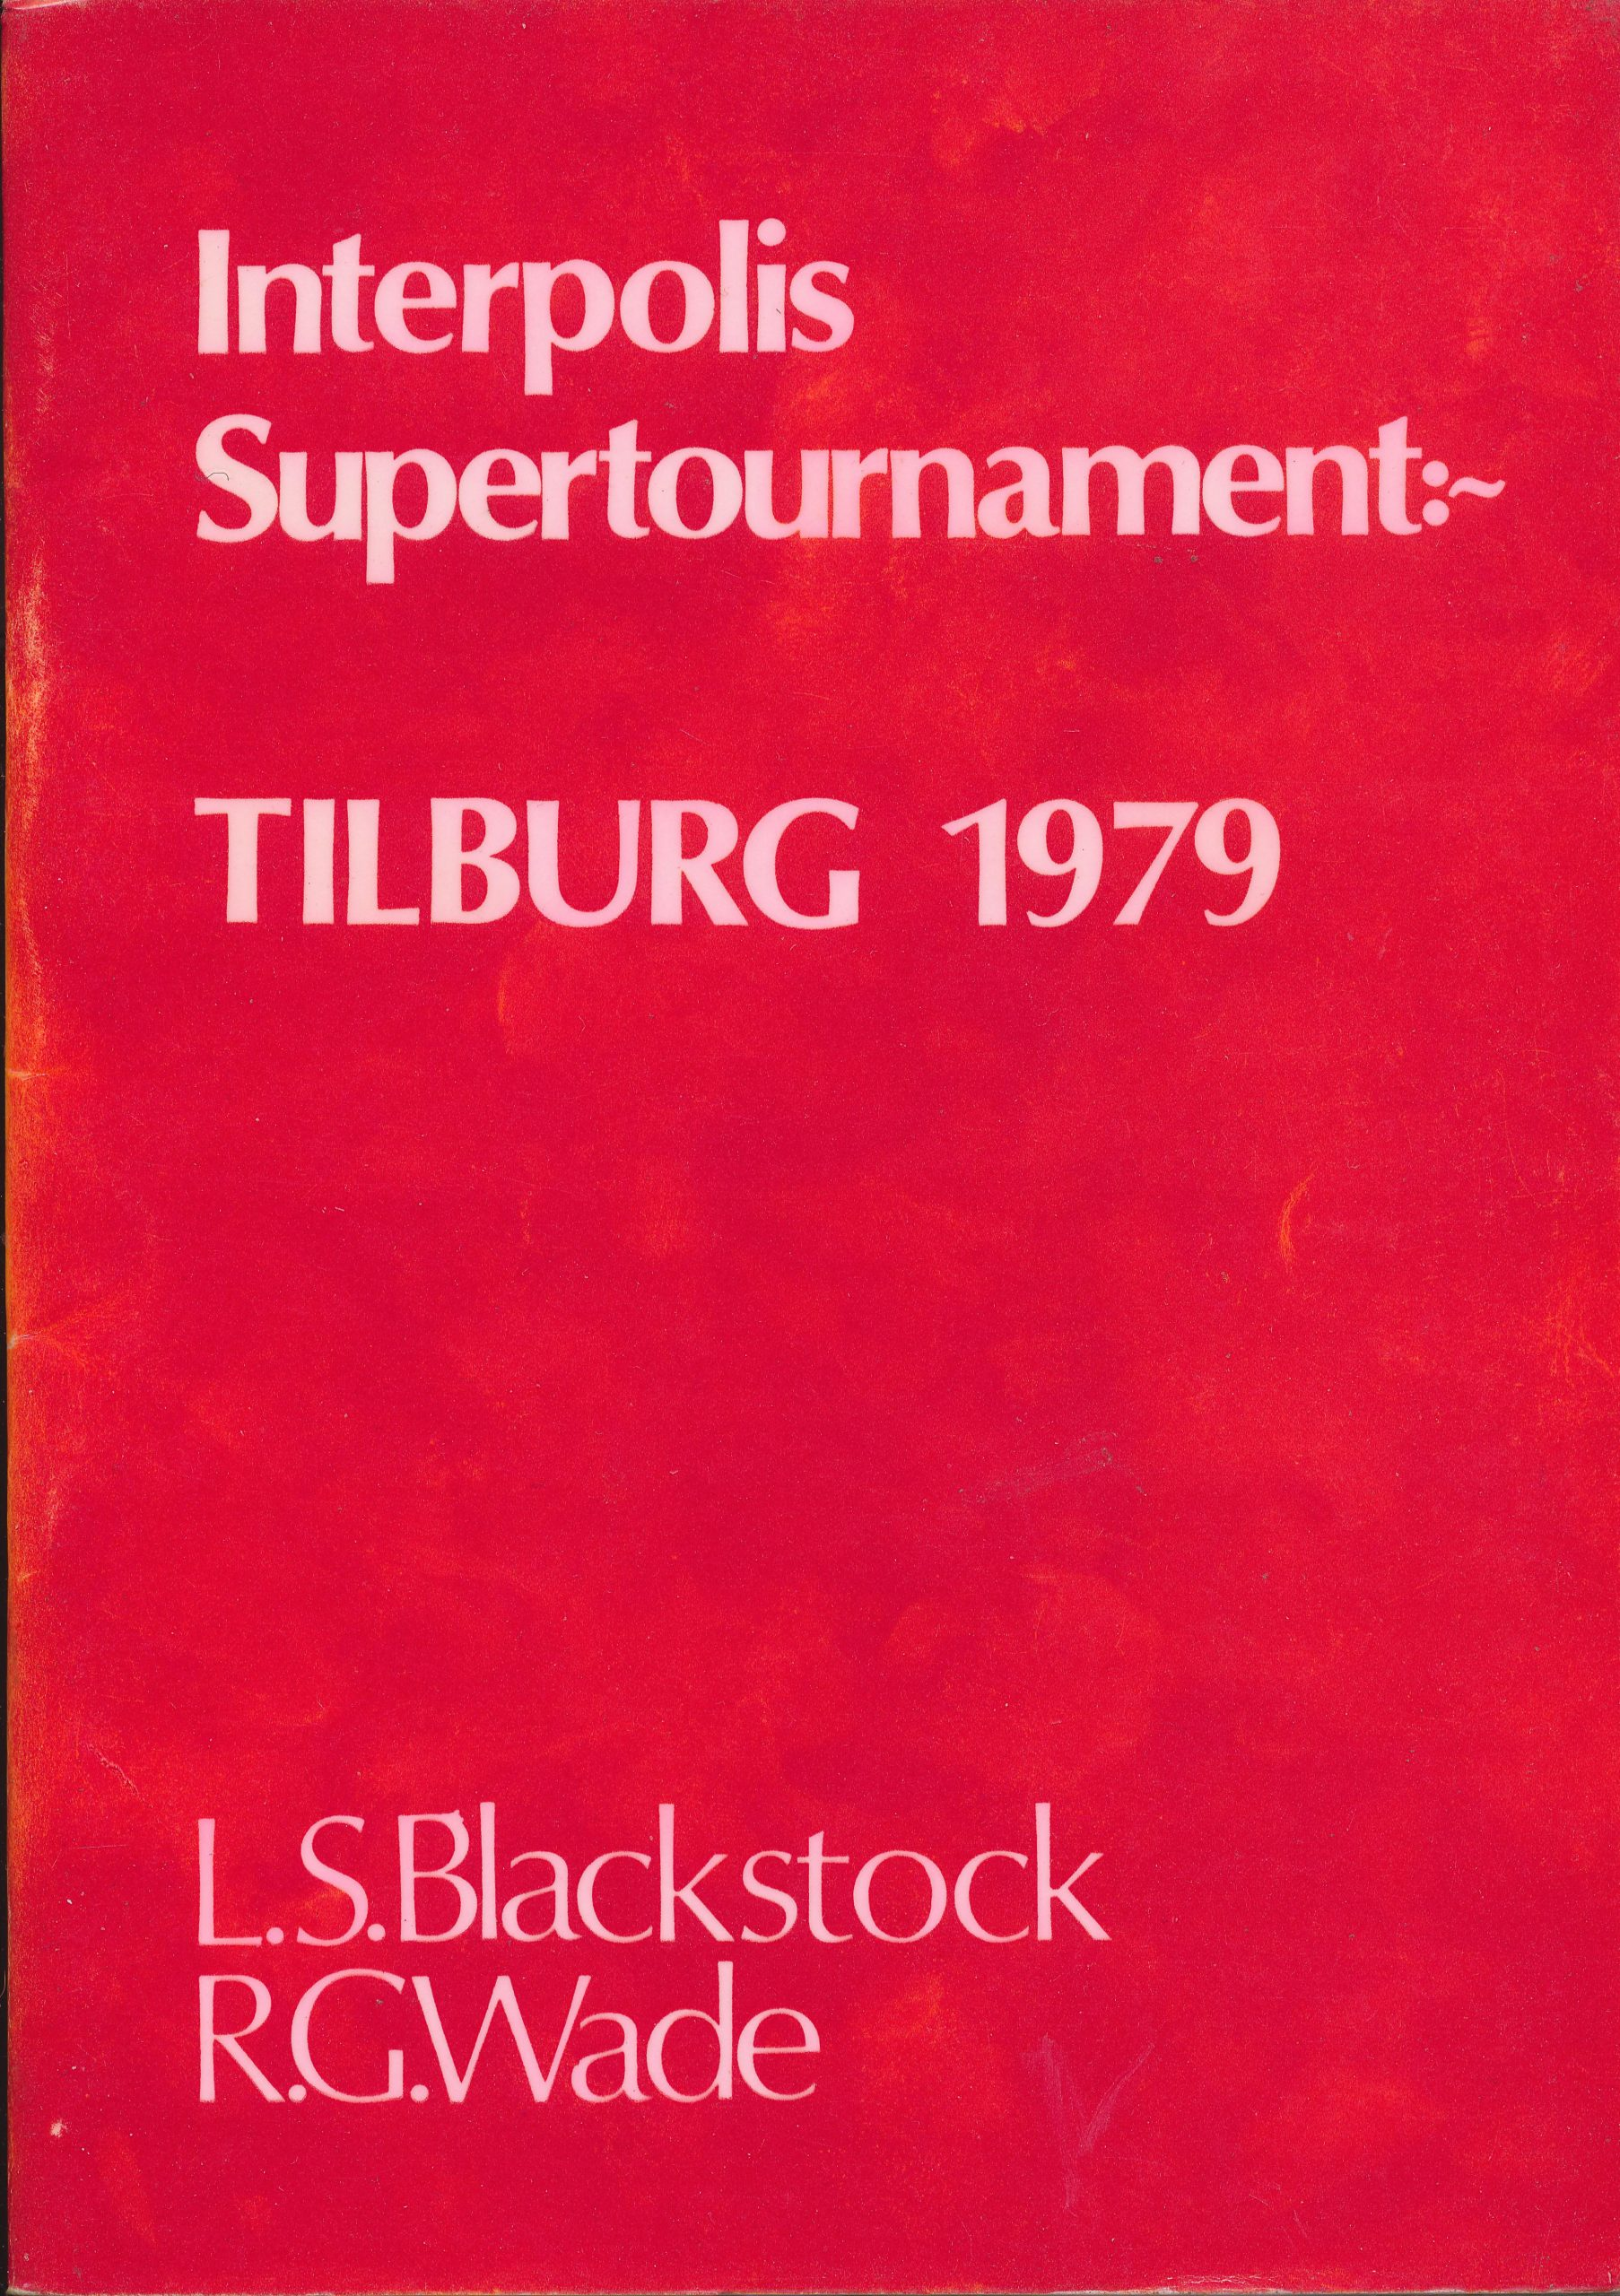 Interpolis Supertournament:~ Tilburg 1979, LS Blackstock & RG Wade, Master Chess Publications, Chess, Sutton Coldfield, 1979